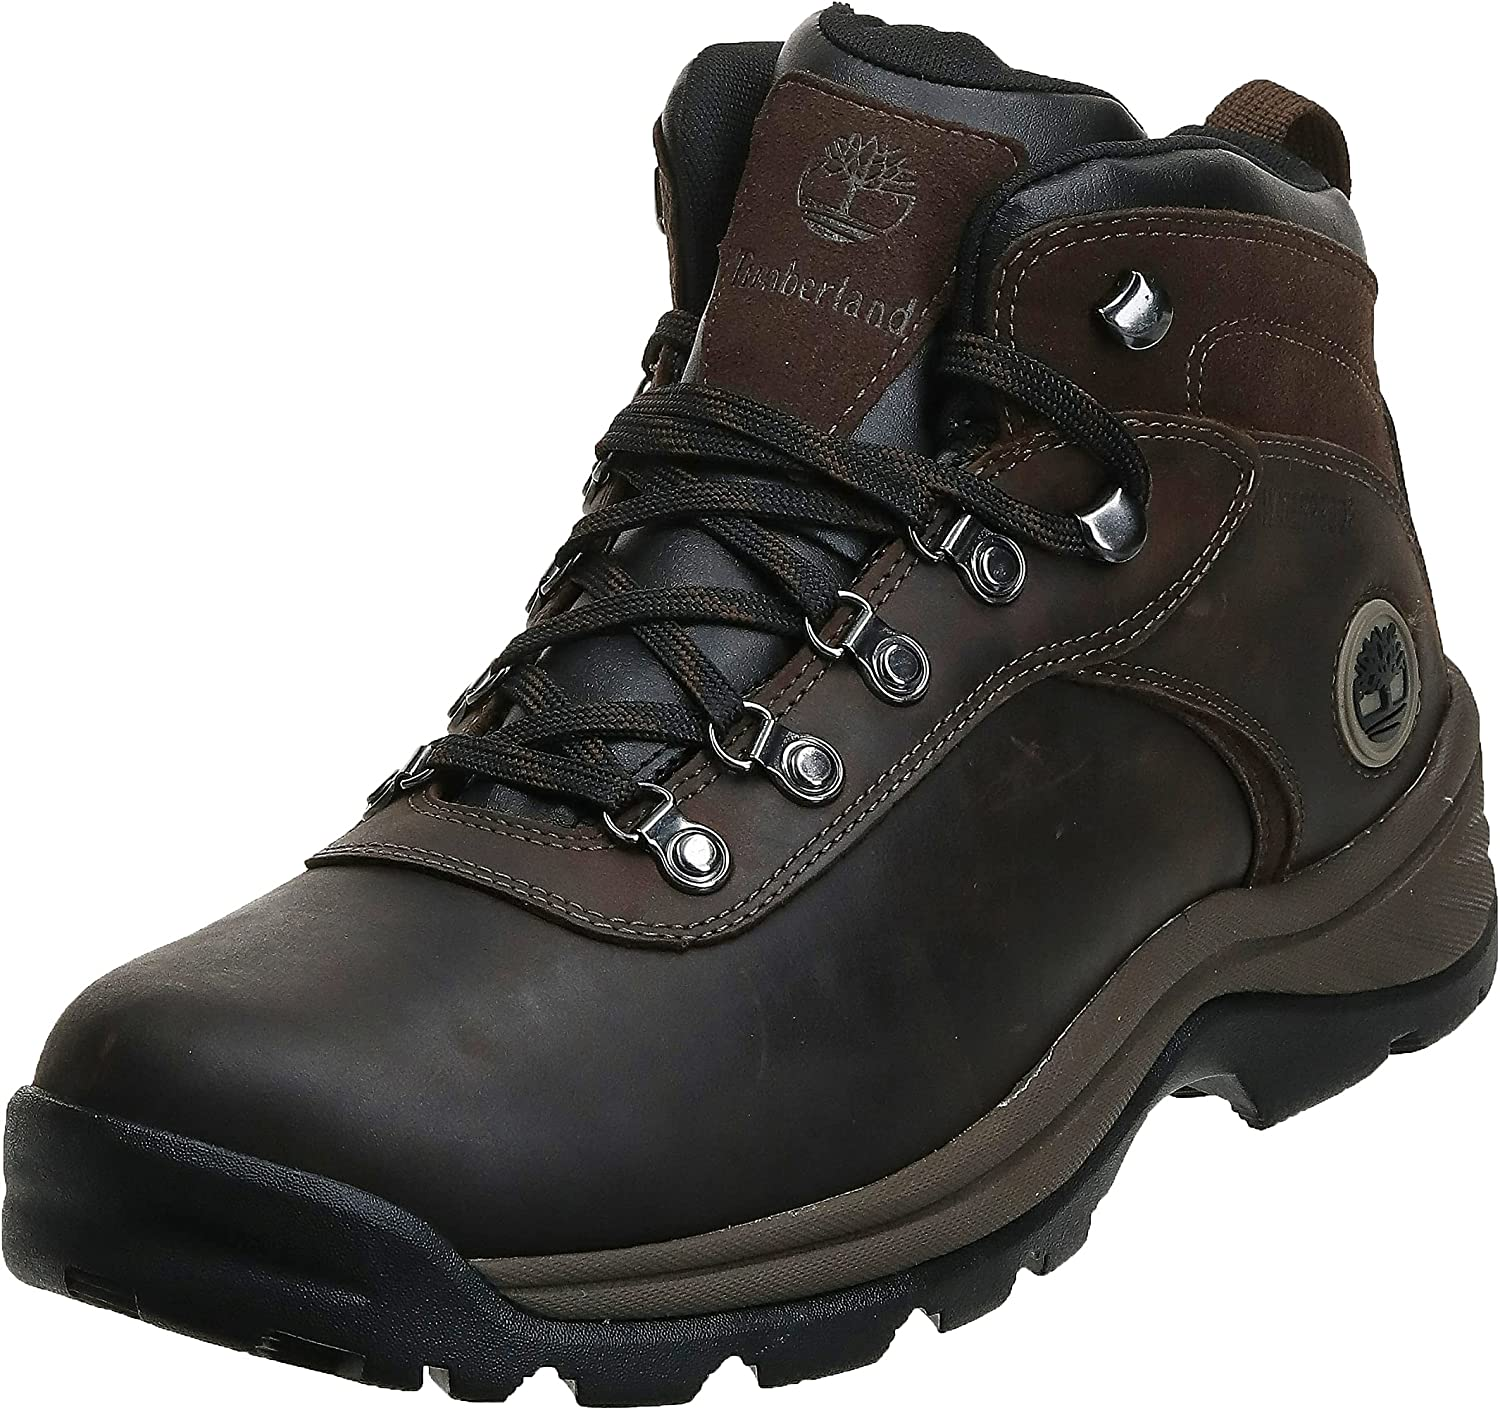 Timberland Men's Flume Mid New Sale special price Shipping Free Hiking Boot Waterproof